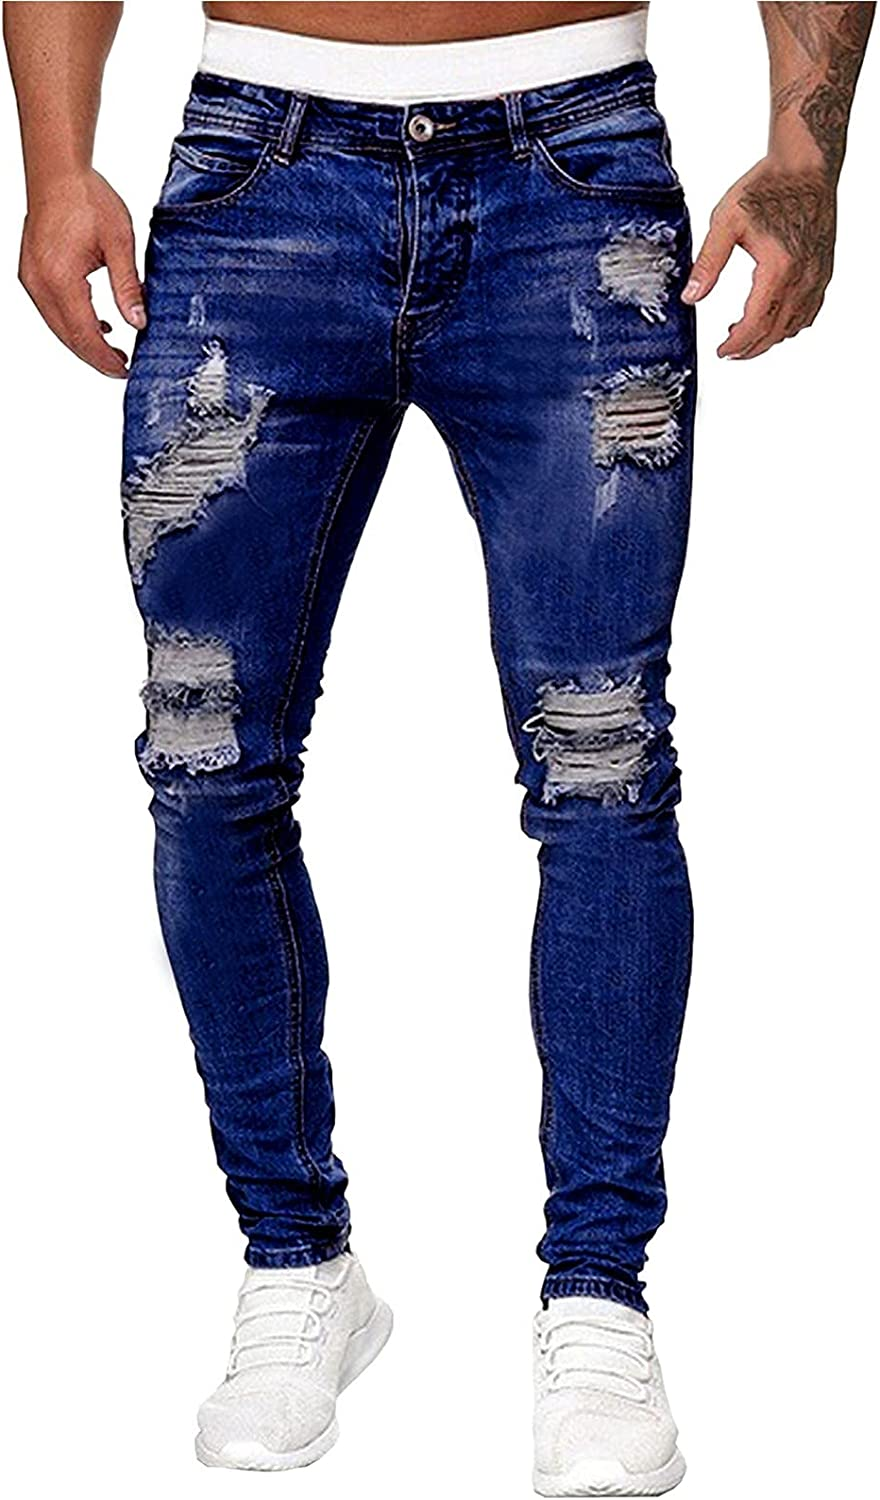 Burband Mens Cowboy Cut Slim Fit Jean Casual Ripped Skinny Distressed Destroyed Stretch Biker Jeans Pants with Holes